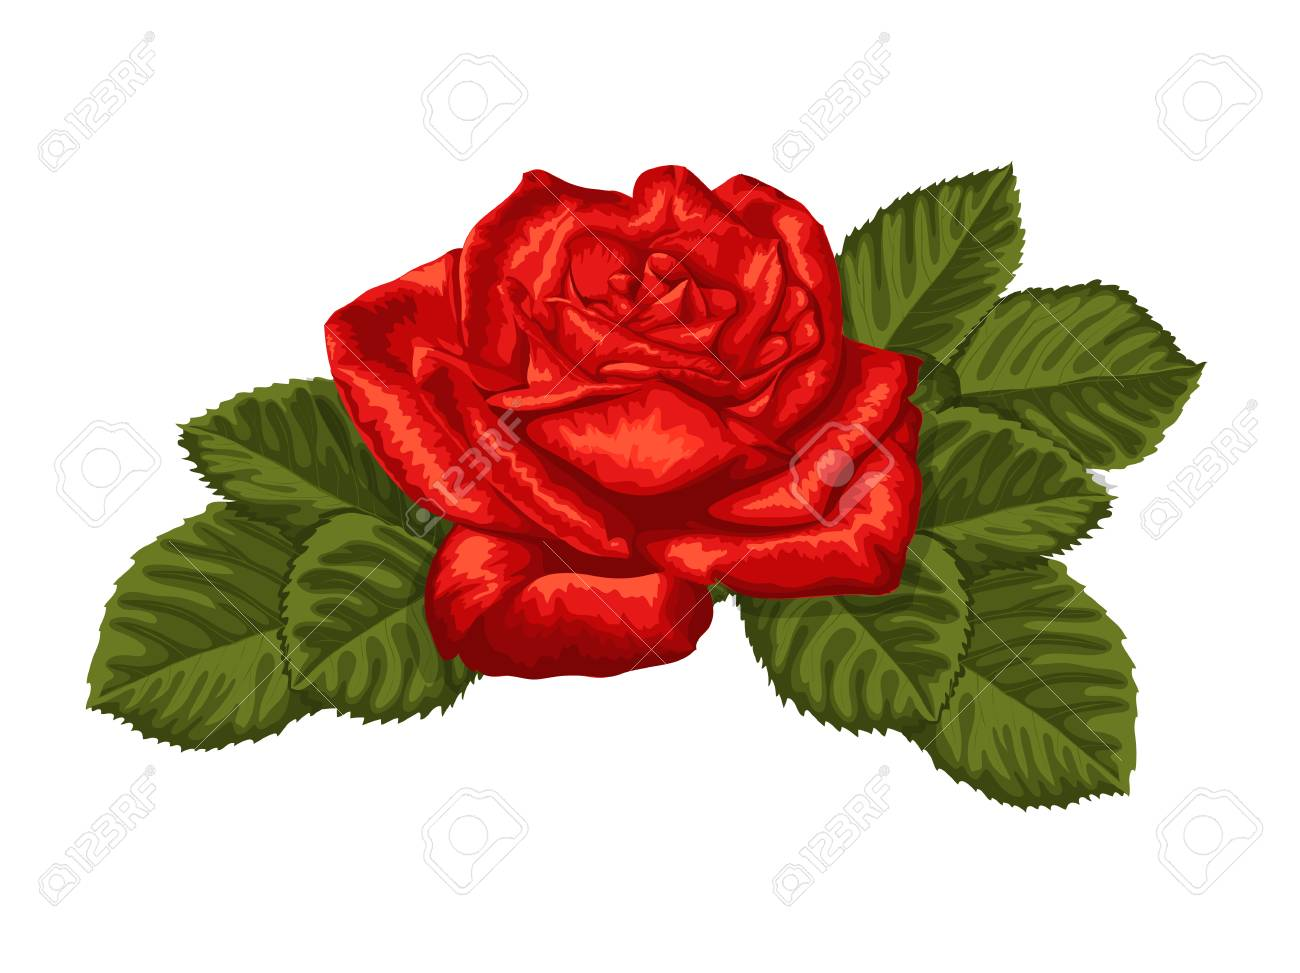 Rose Leaf Drawing at GetDrawings.com | Free for personal use Rose ...